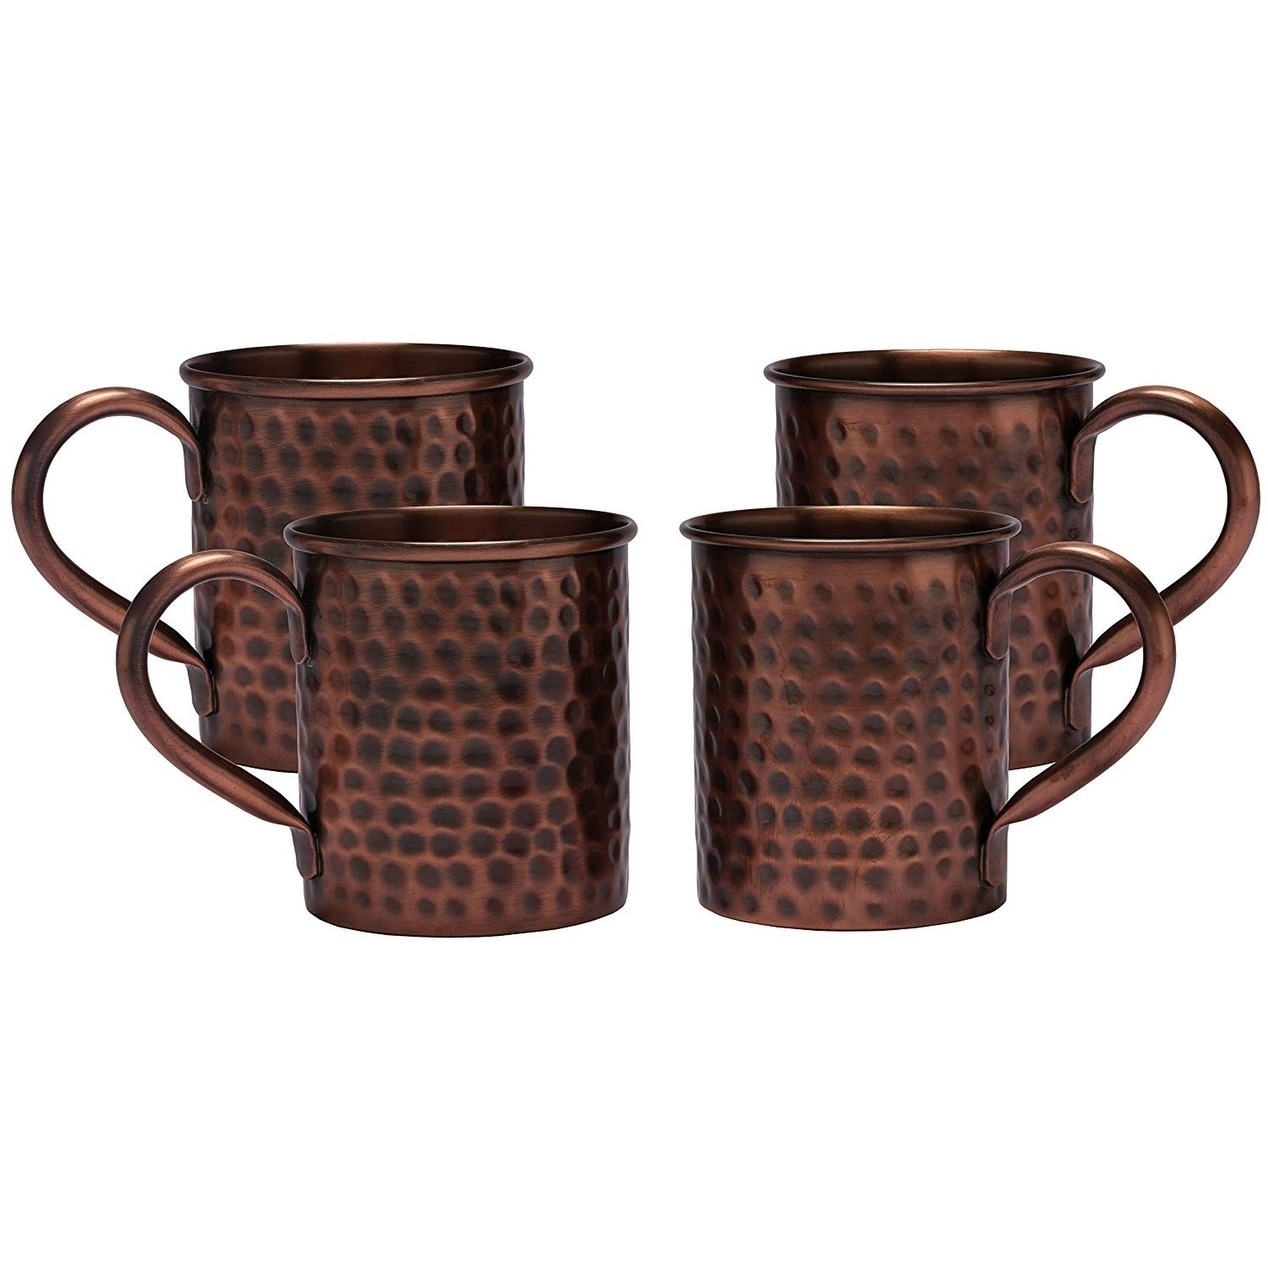 Melange Set Of 4 Antique Finish 24 Oz Copper Classic Mug For Moscow Mules 100 Pure Hammered Copper Overstock 27267910